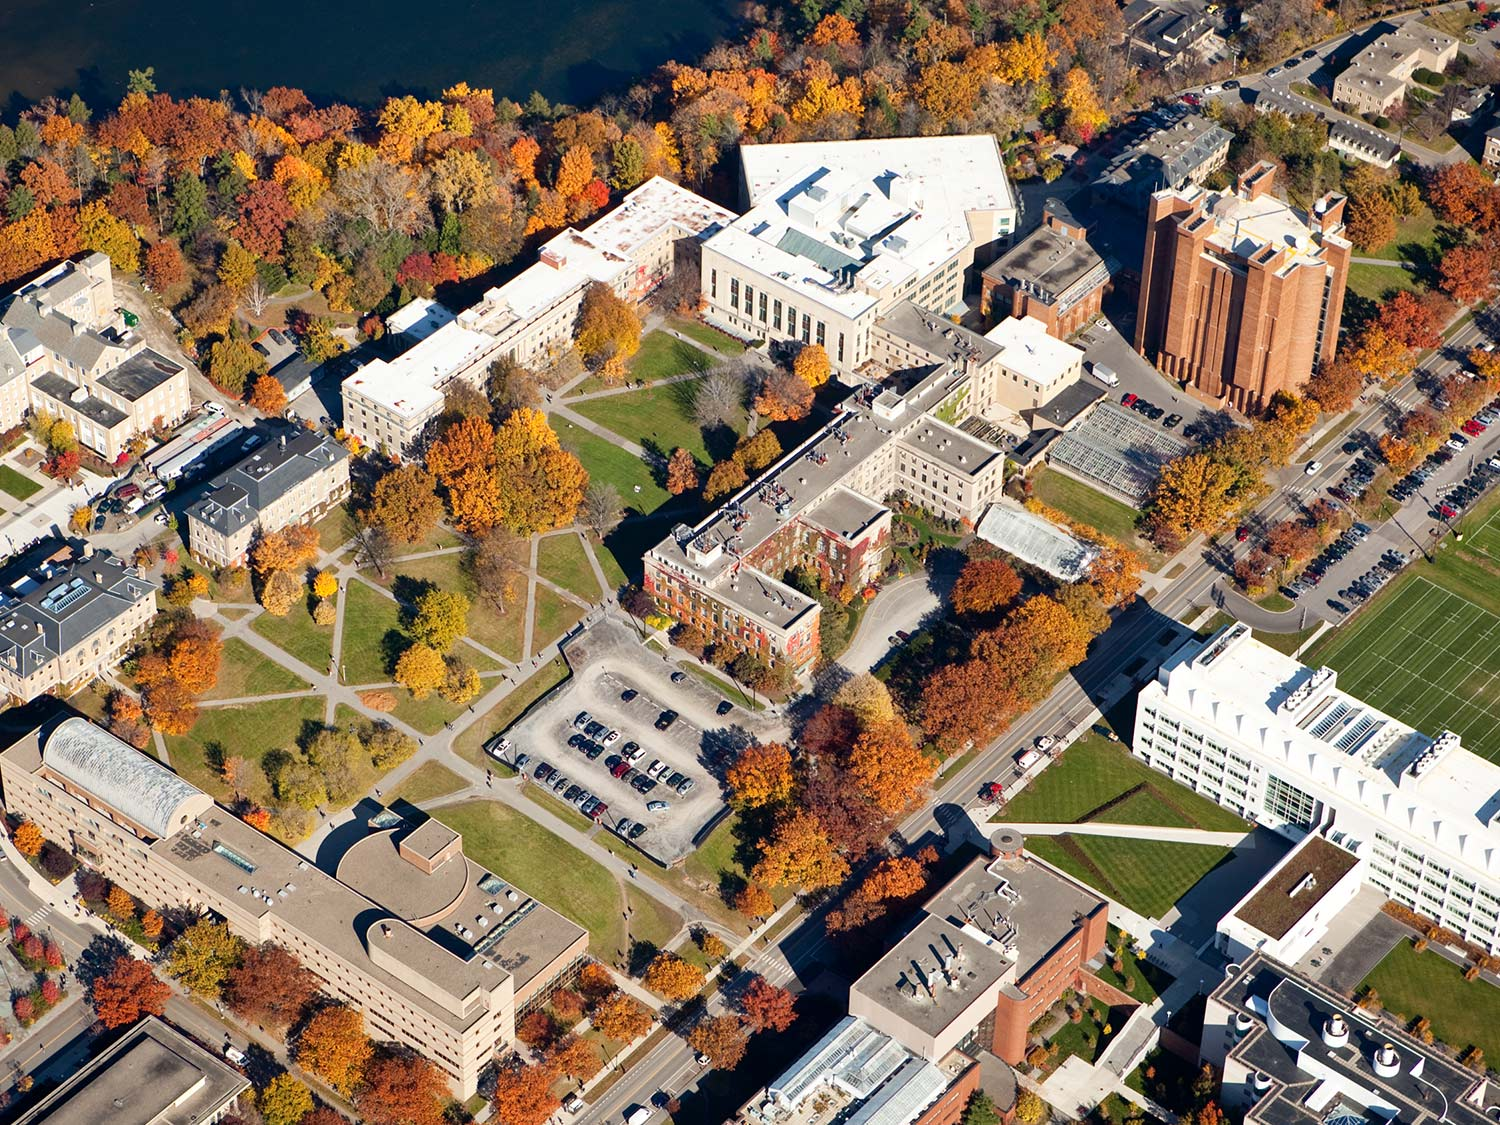 Aerial view of the Cornell campus during fall